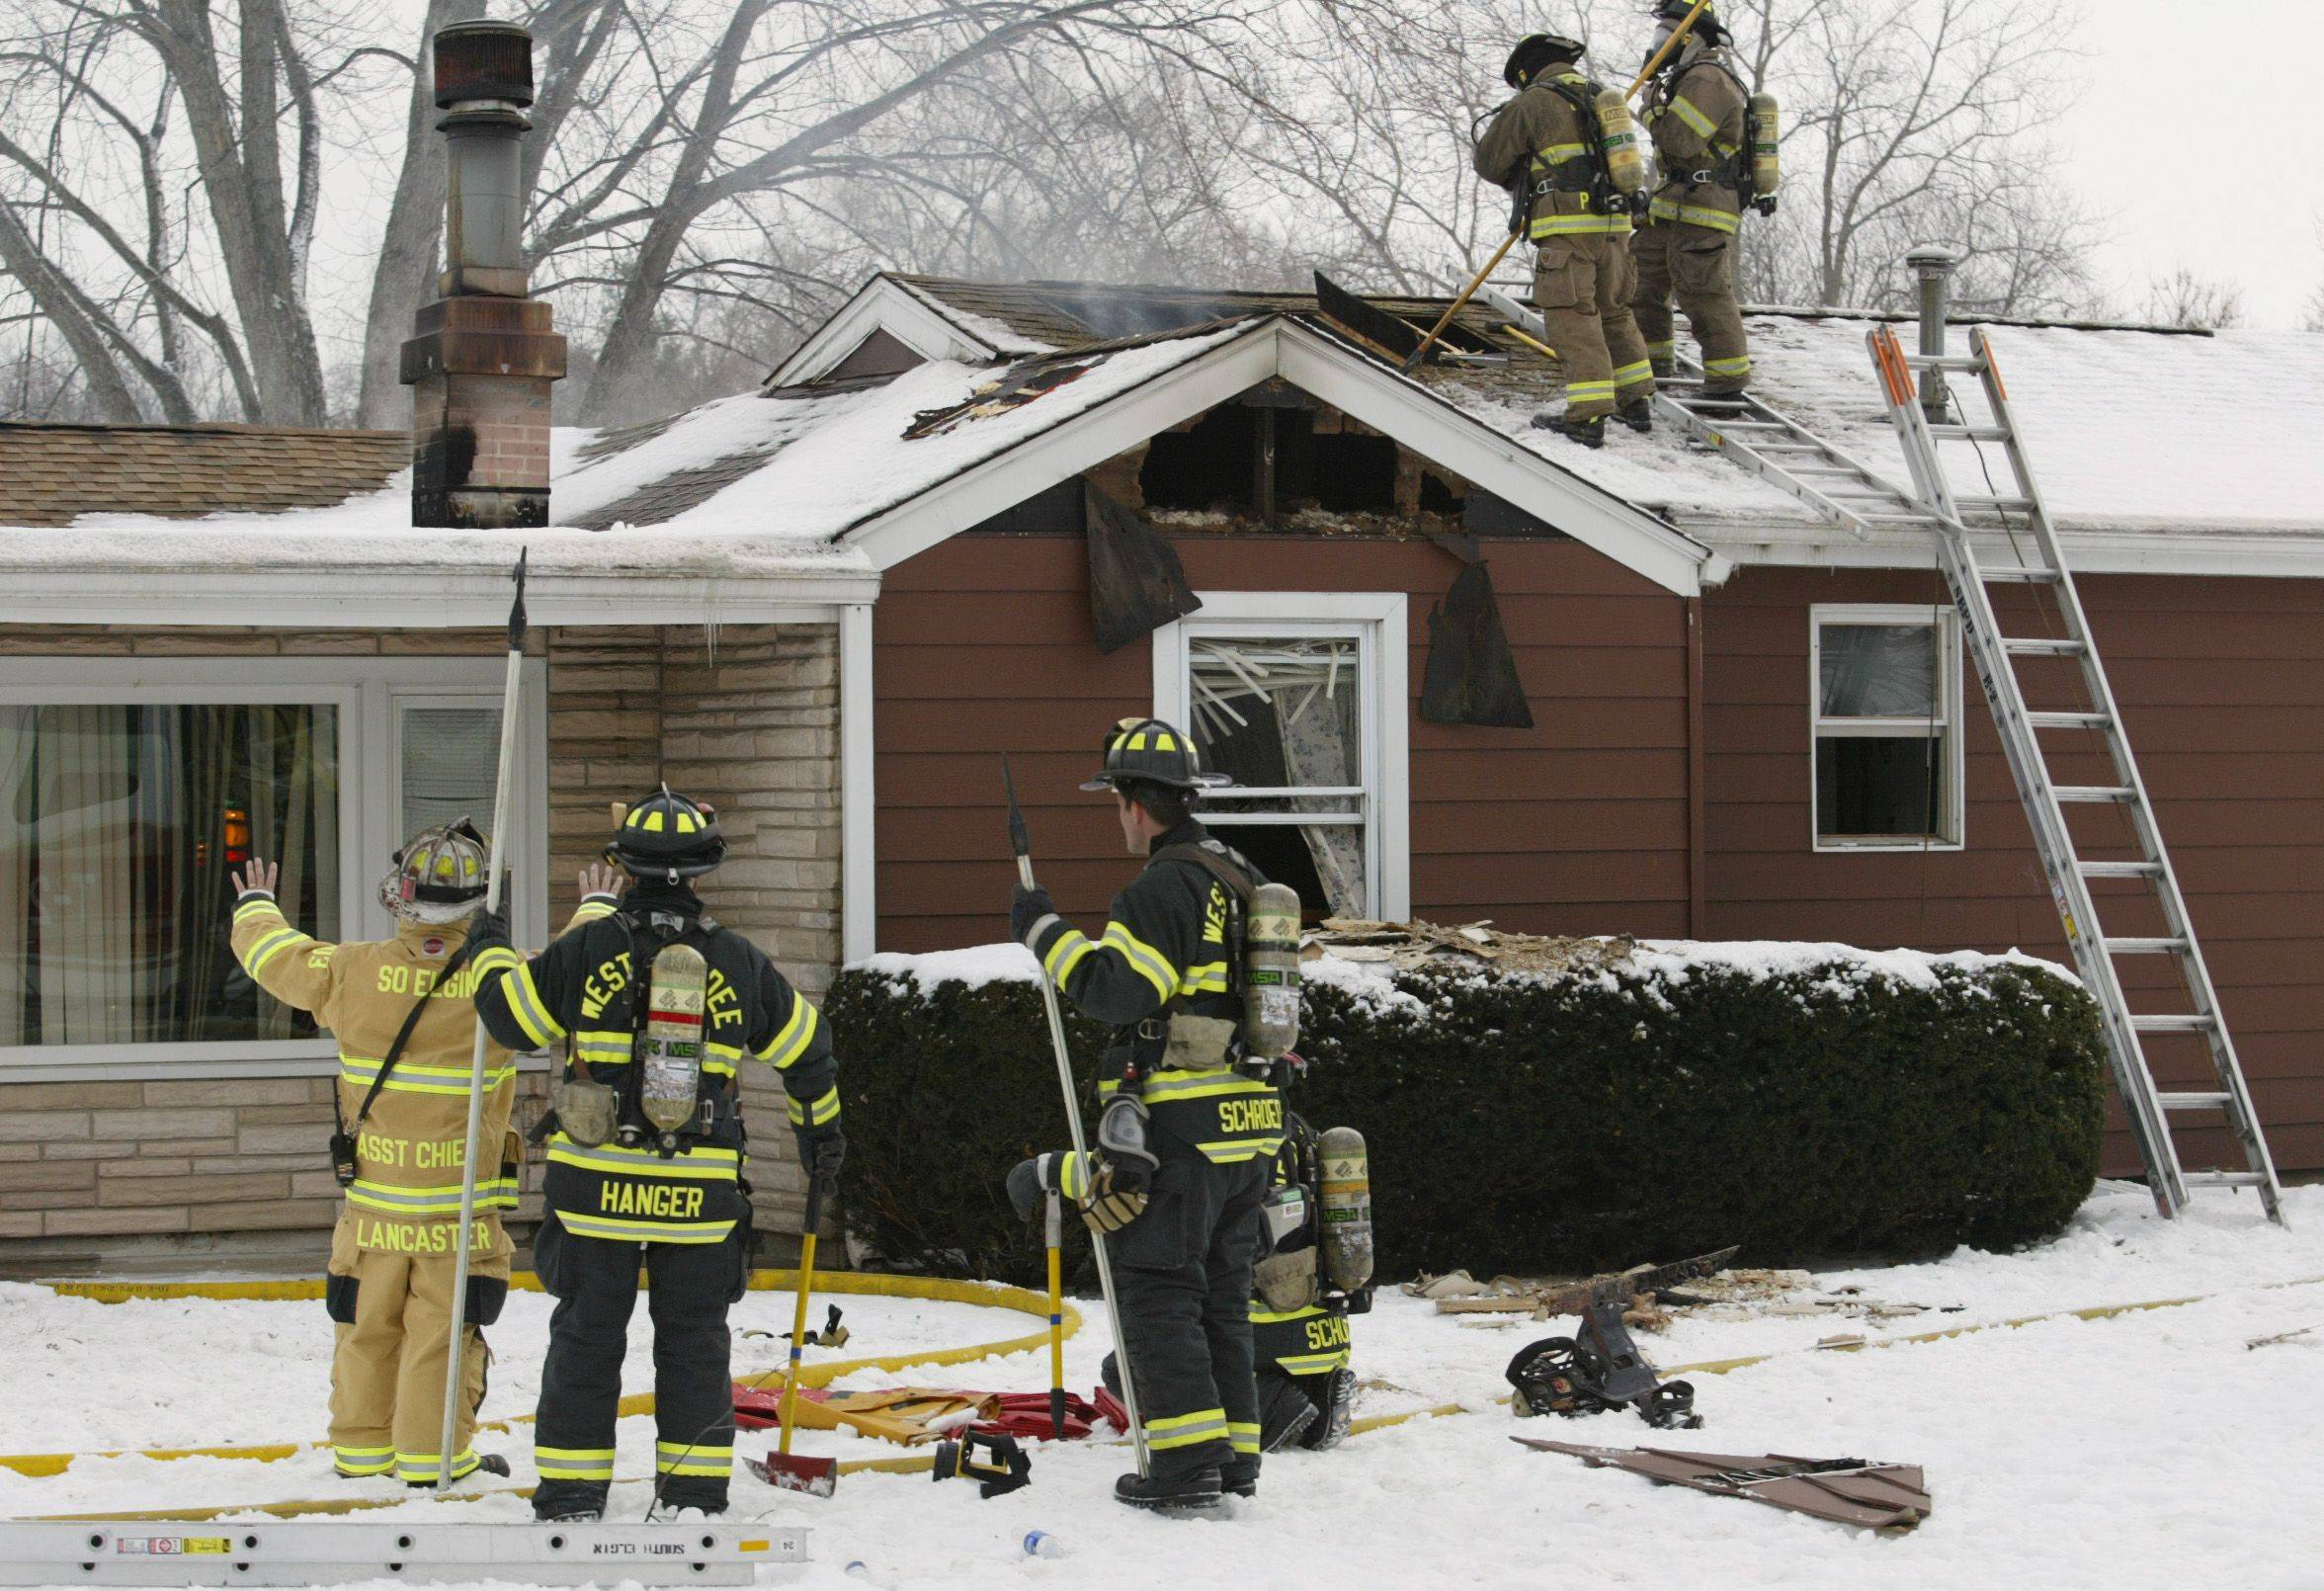 Firefighters from several area departments responded to a fire on Gale Street in Elgin Township Thursday morning. South Elgin, Elgin, Pingree Grove, West Dundee, Bartlett and Elburn collaborated efforts on the scene.